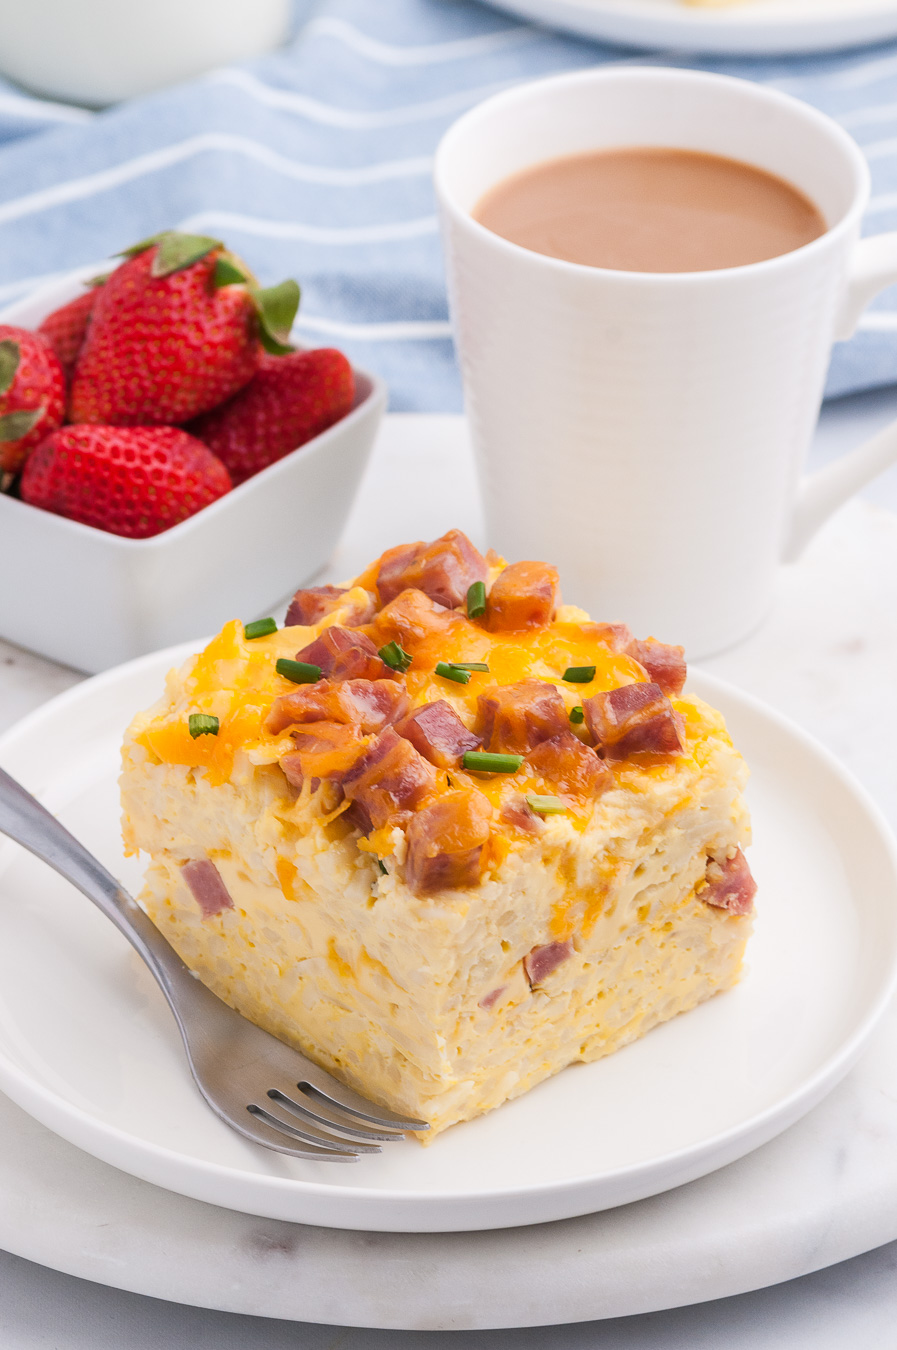 brunch casserole with ham and cheddar cheese made in the slow cooker. Serving placed on a plate and served next to coffee mug and fresh strawberries.